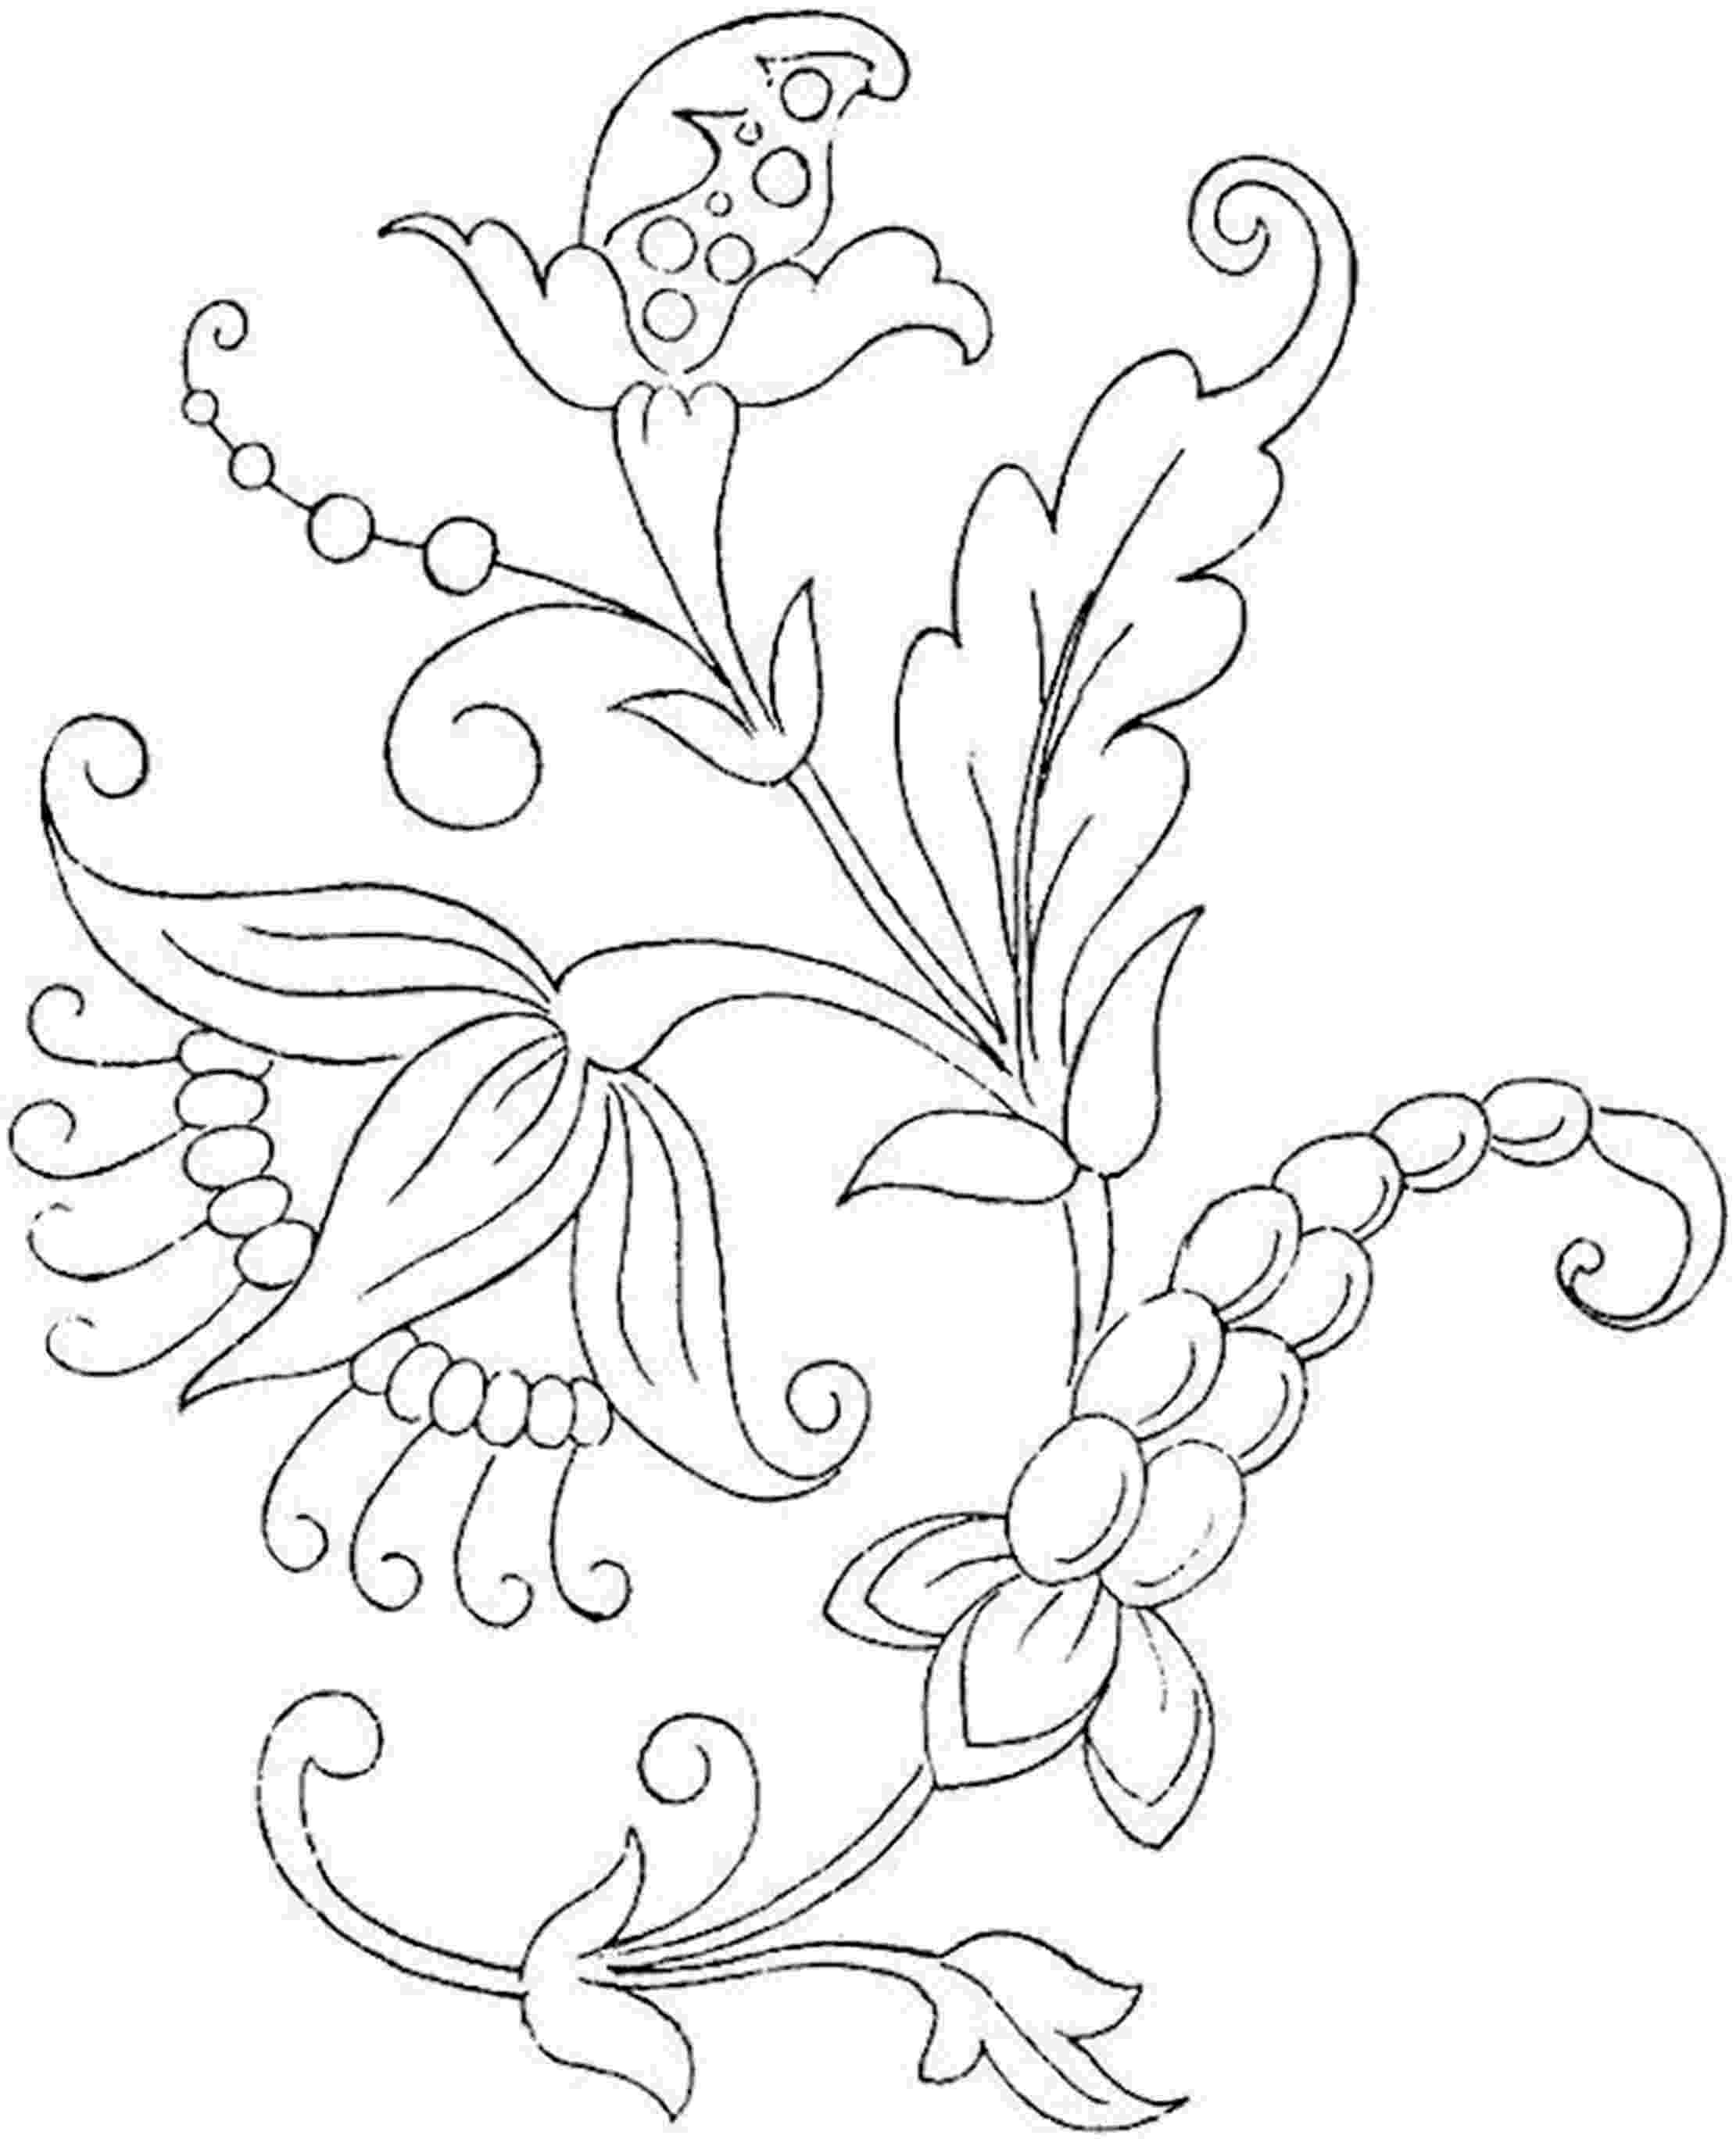 pictures of flowers to print and color free printable flower coloring pages for kids best and pictures print flowers color to of